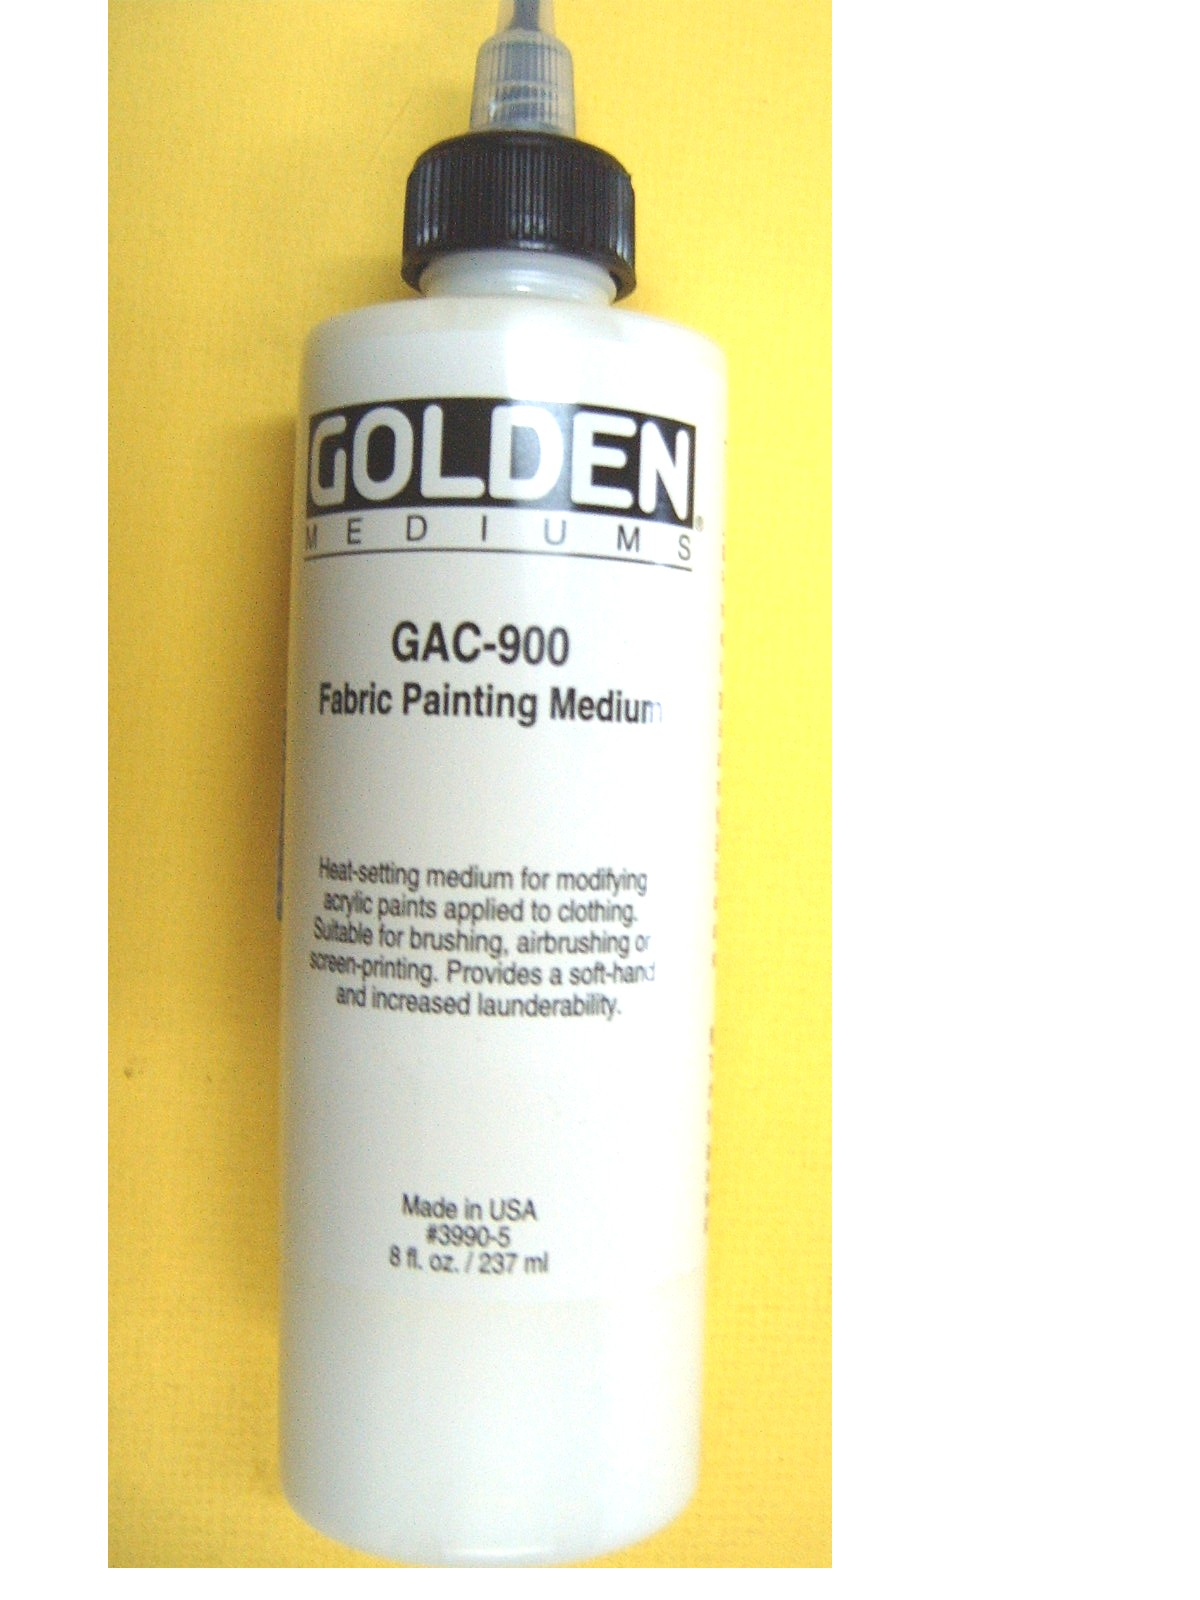 Golden GAC 900 Fabric Medium